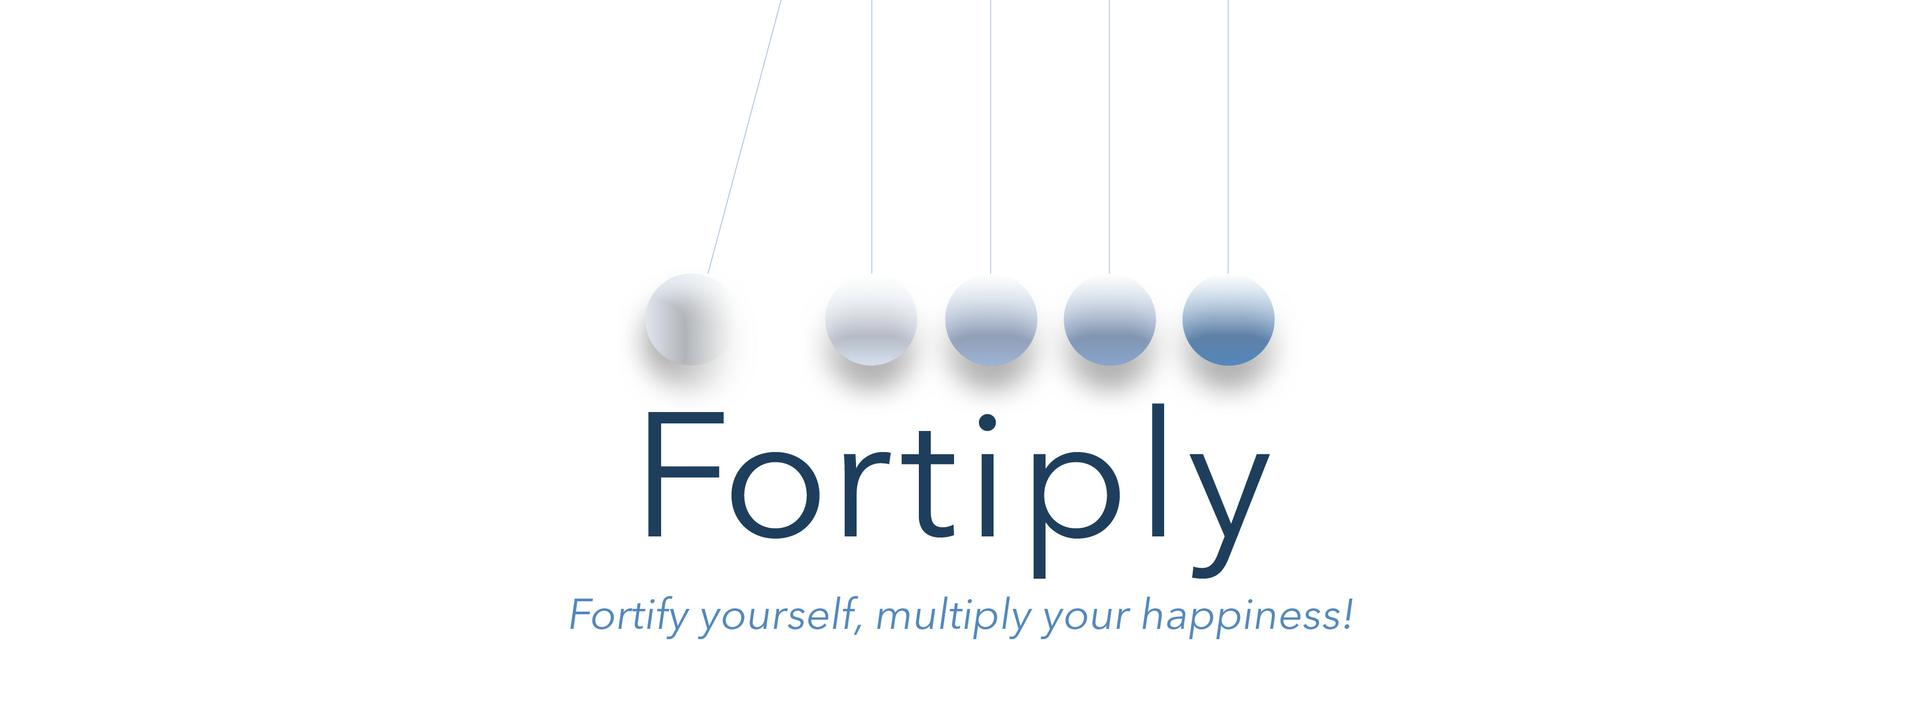 Fortiply coaching: fortify yourself, multiply your happiness!